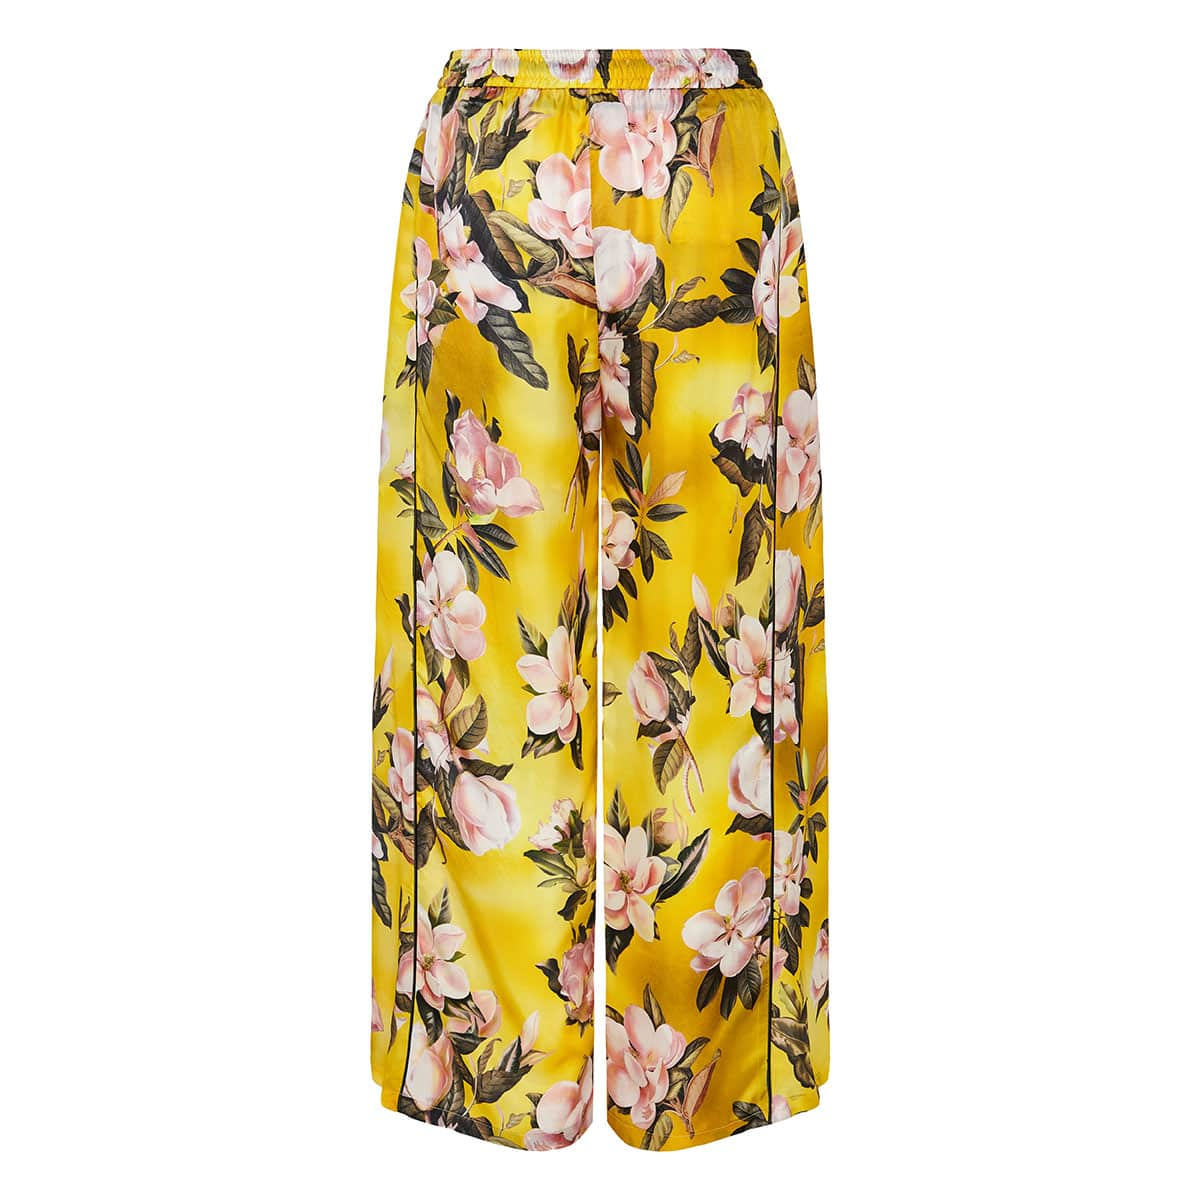 Apate floral wide-leg pyjama trousers